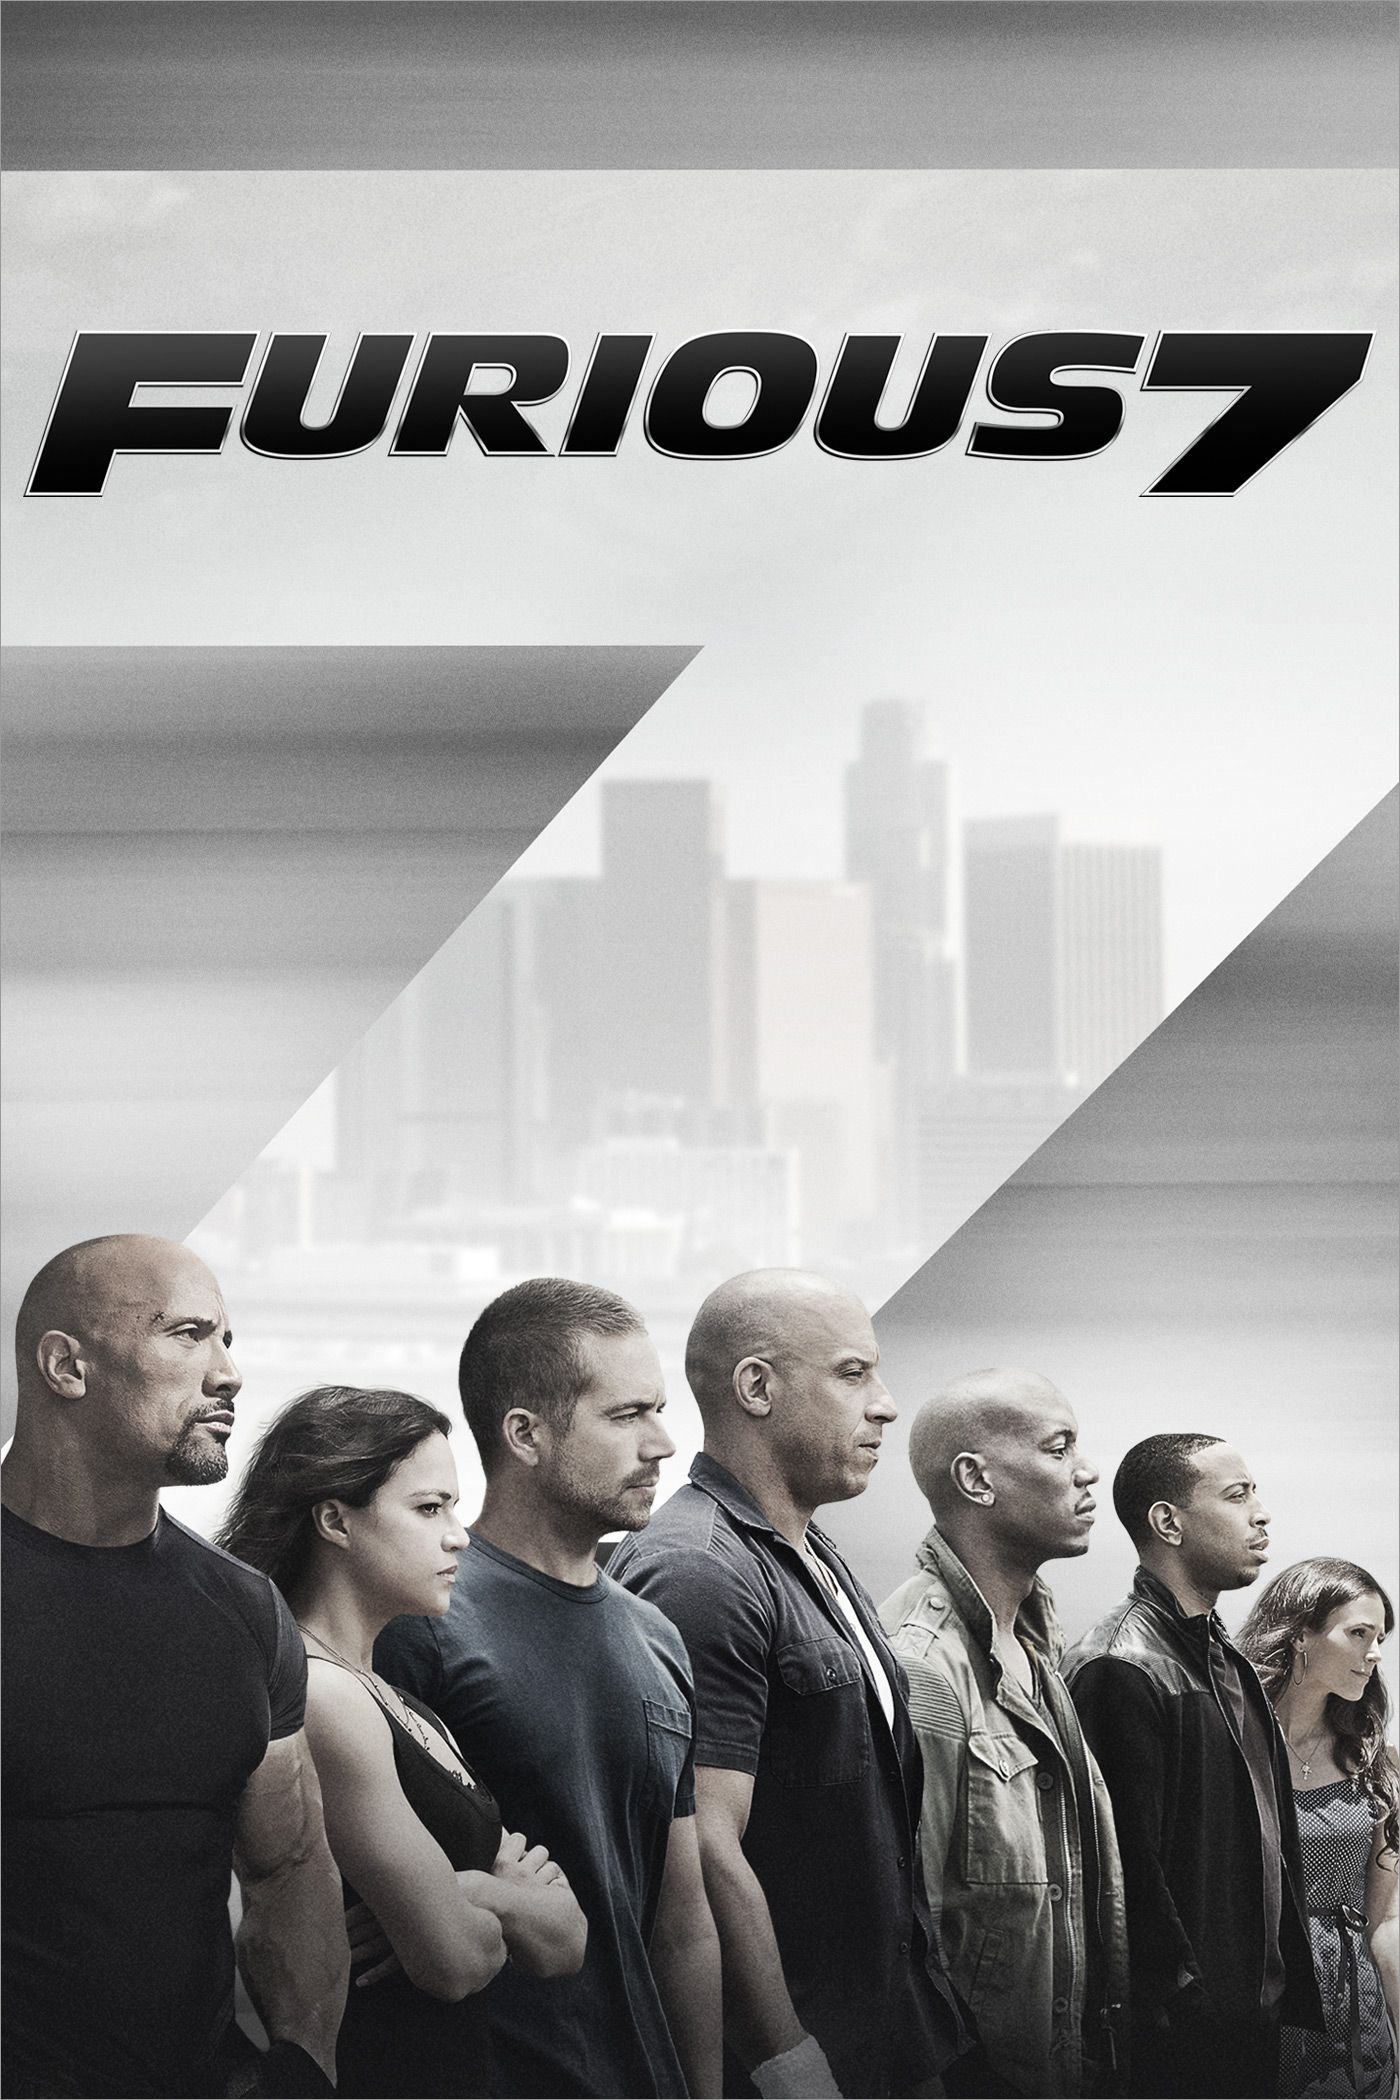 Continuing the global exploits in the unstoppable franchise built on speed vin diesel paul